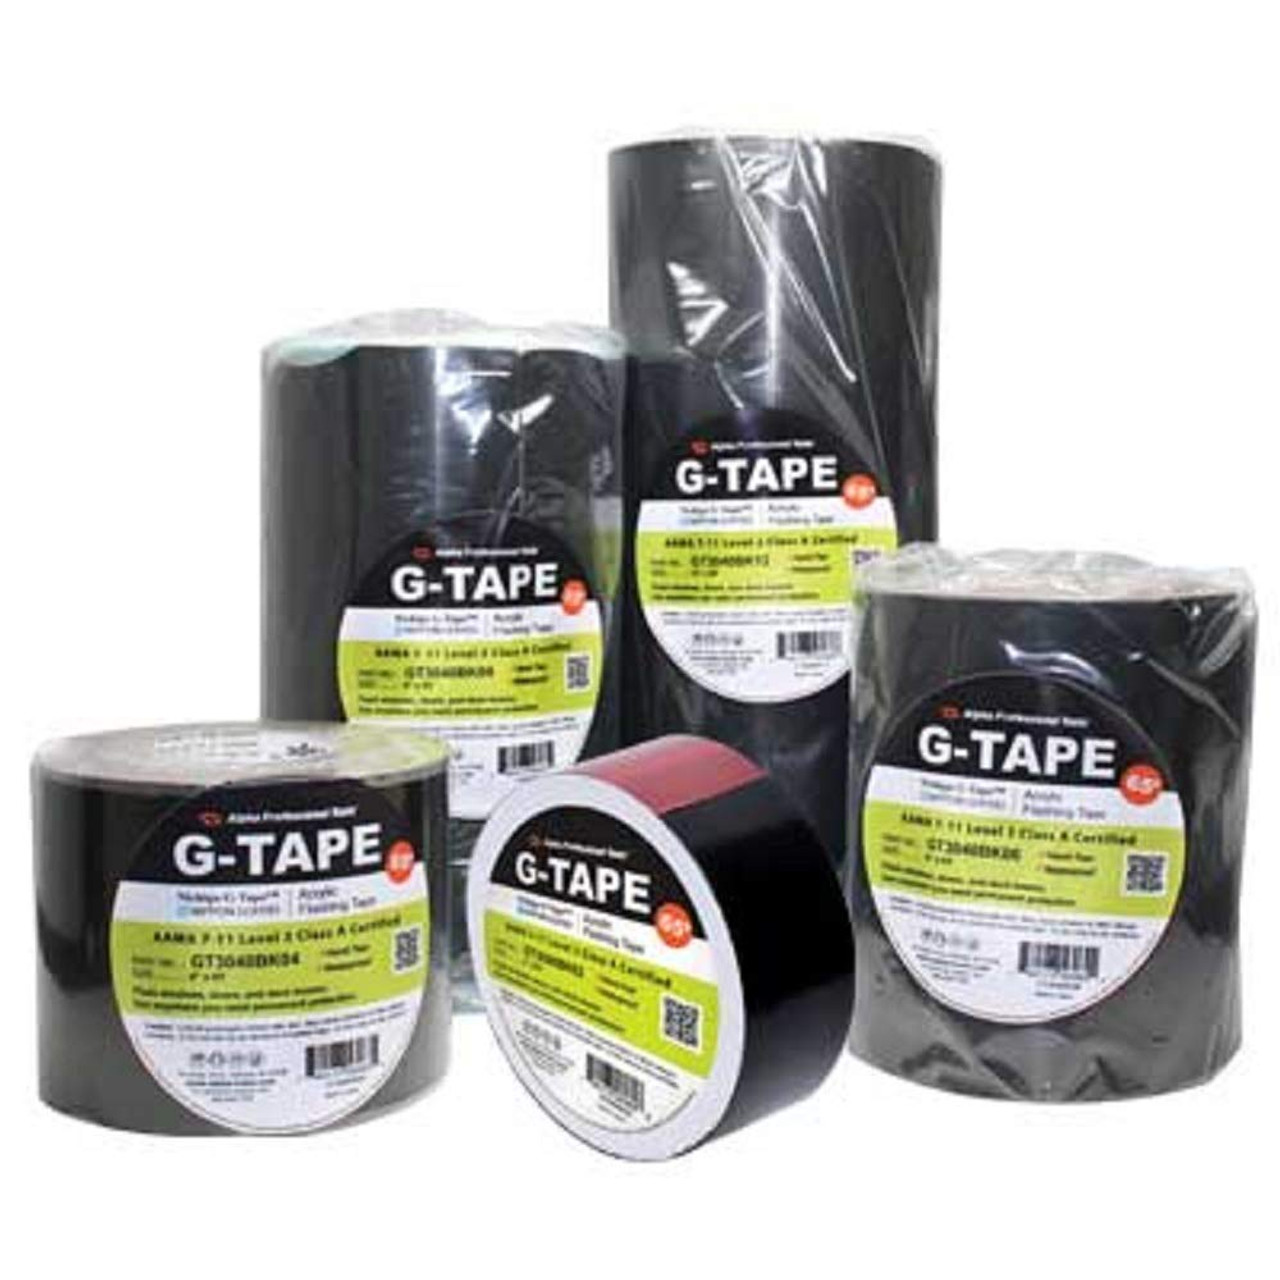 Water Proof Acrylic Flashing G-Tape 2 inch x 65 ft for windows deck beams doors